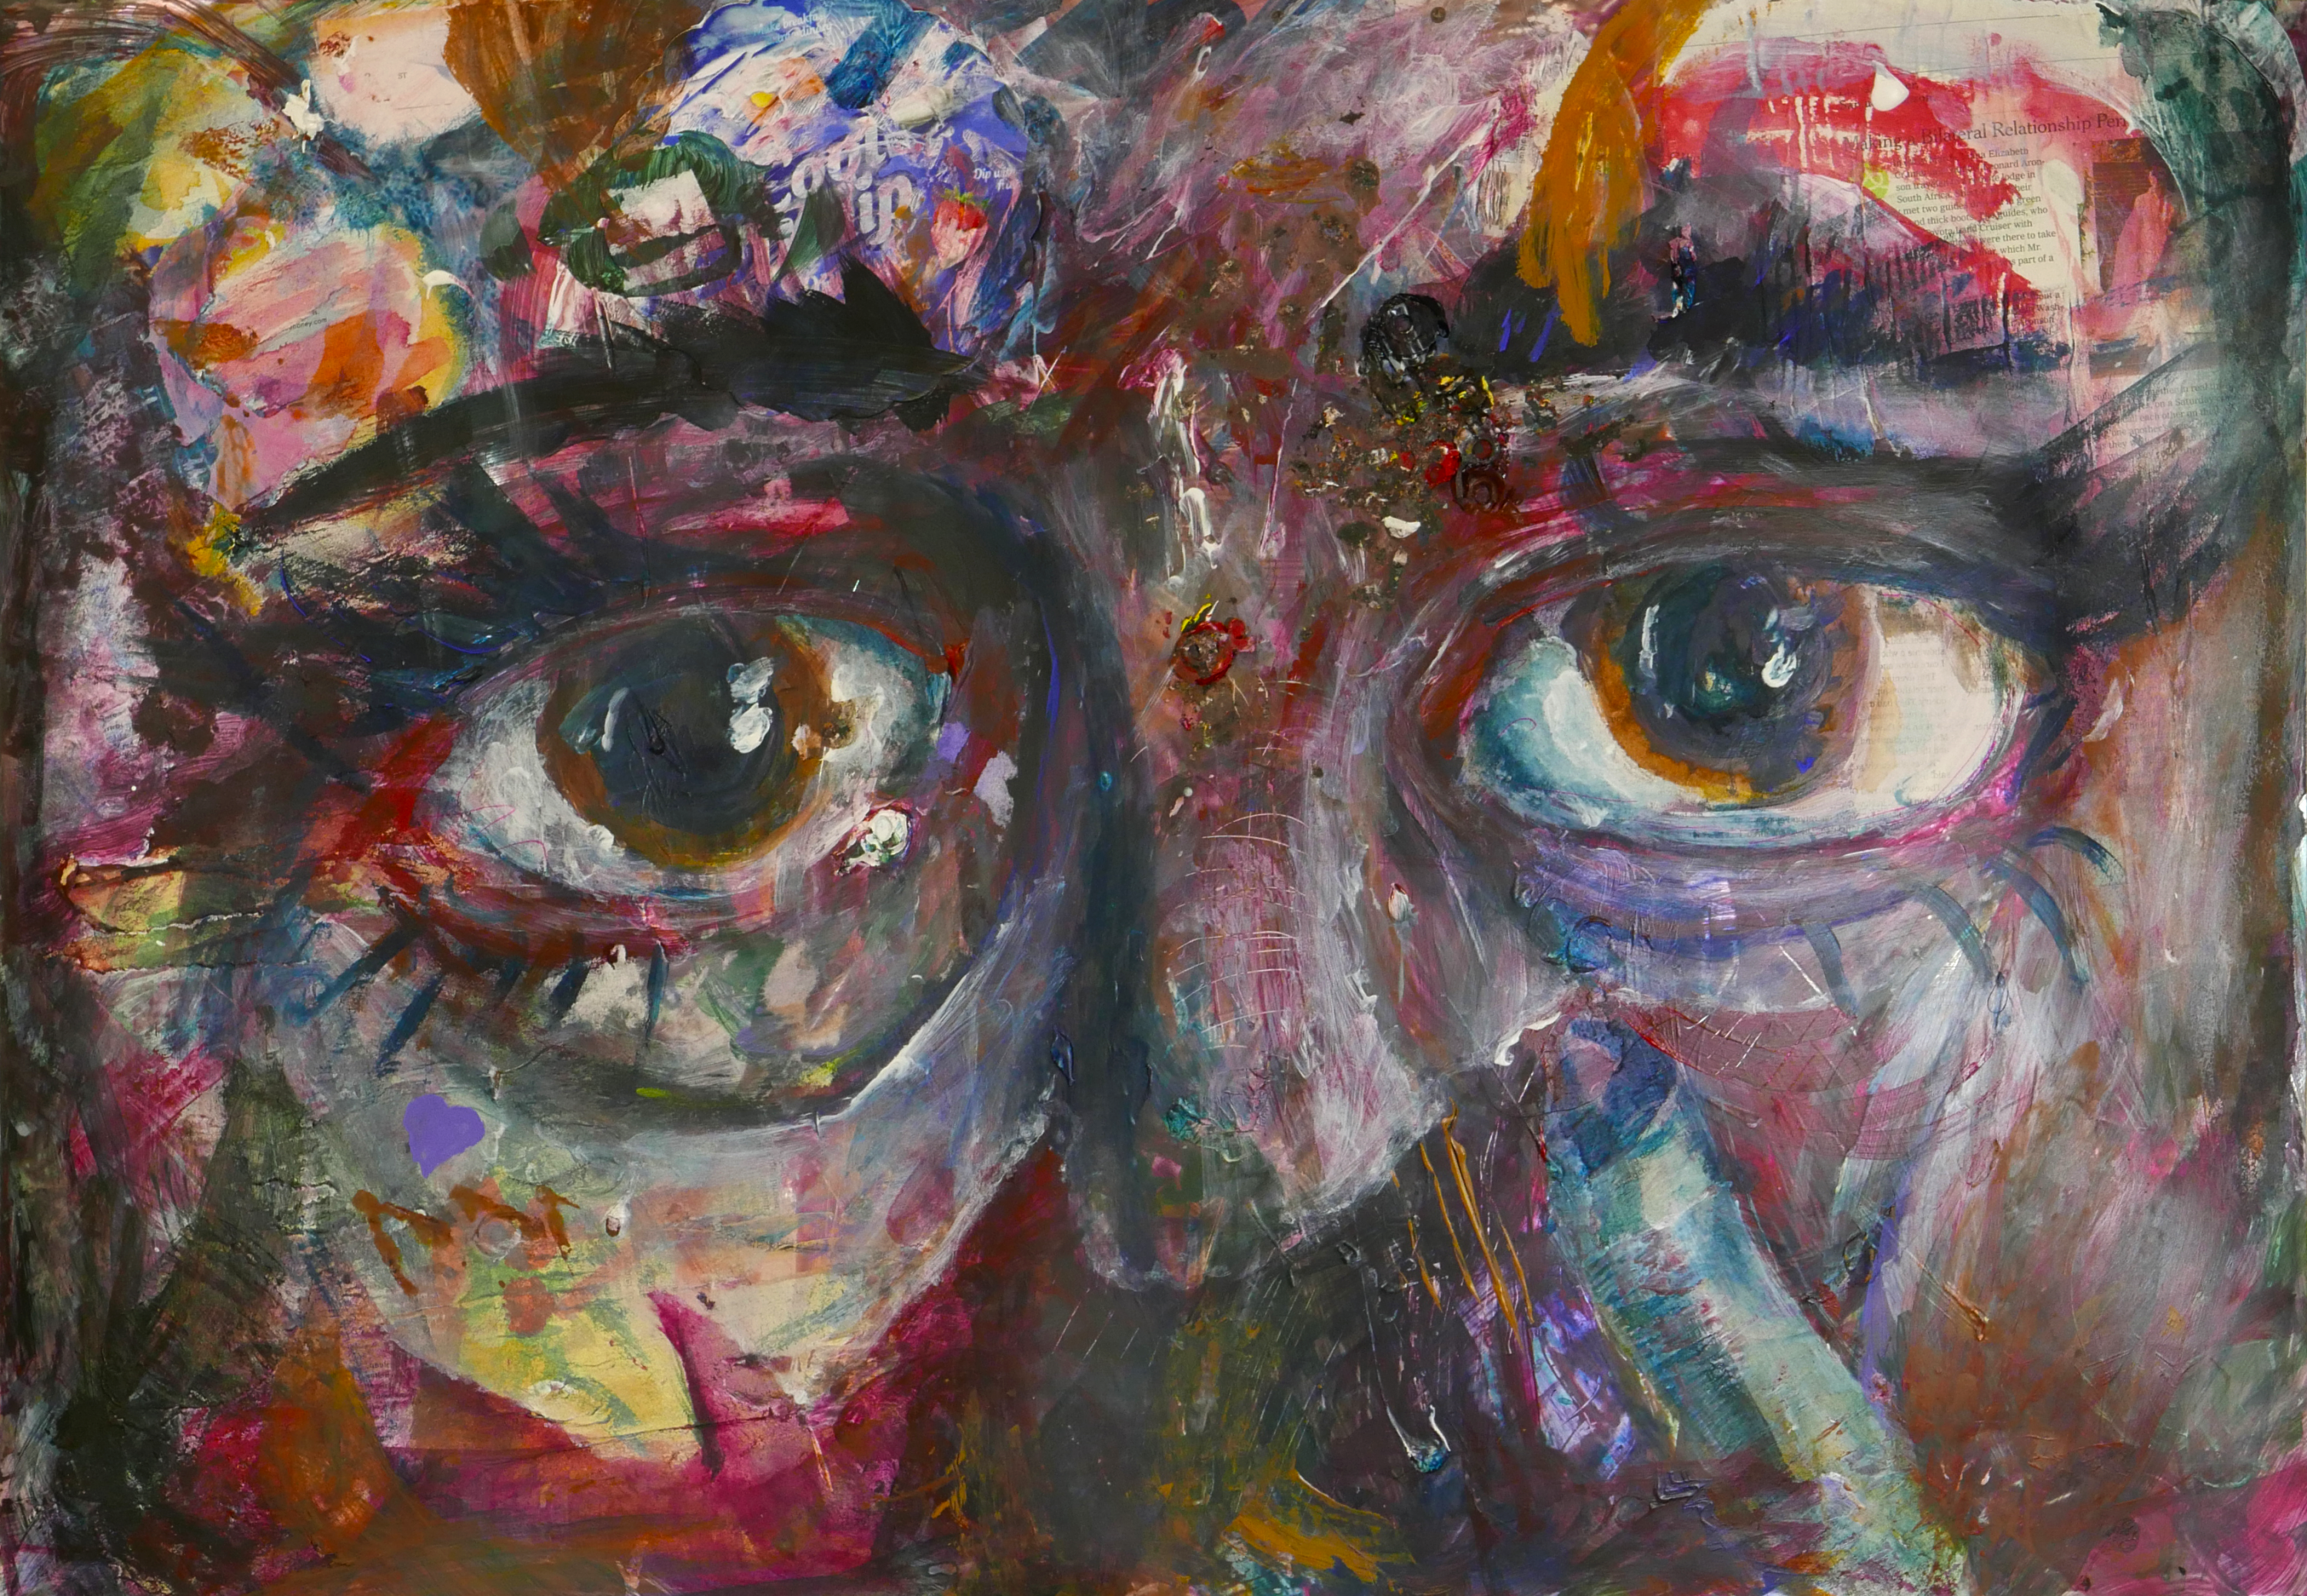 A colorful and textured abstract painting with a large pair of eyes.